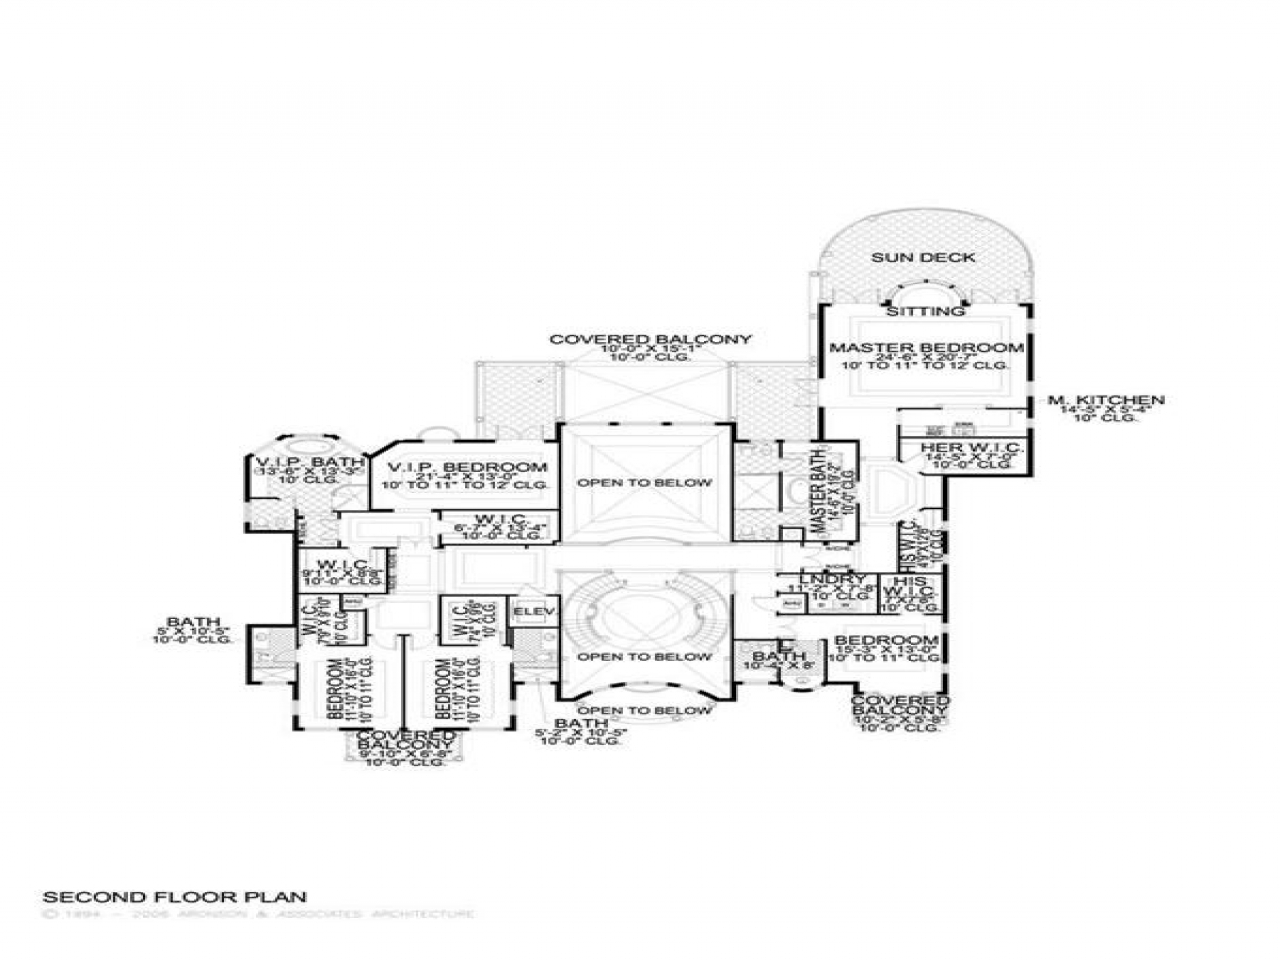 Small spanish style homes mission style homes floor plans for Spanish style home floor plans